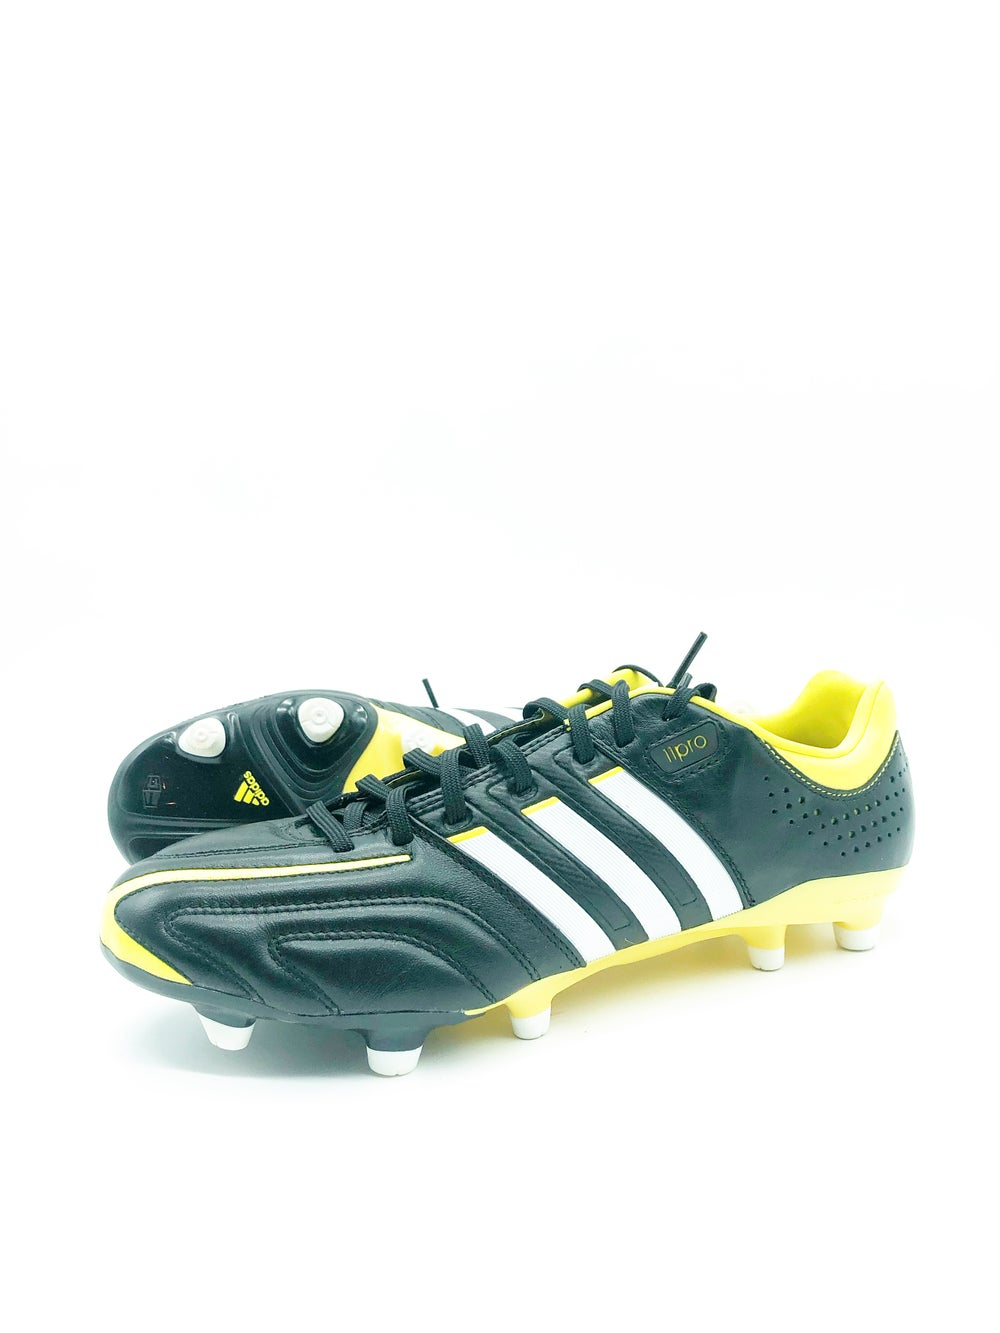 Image of Adidas 11pro black yellow FG